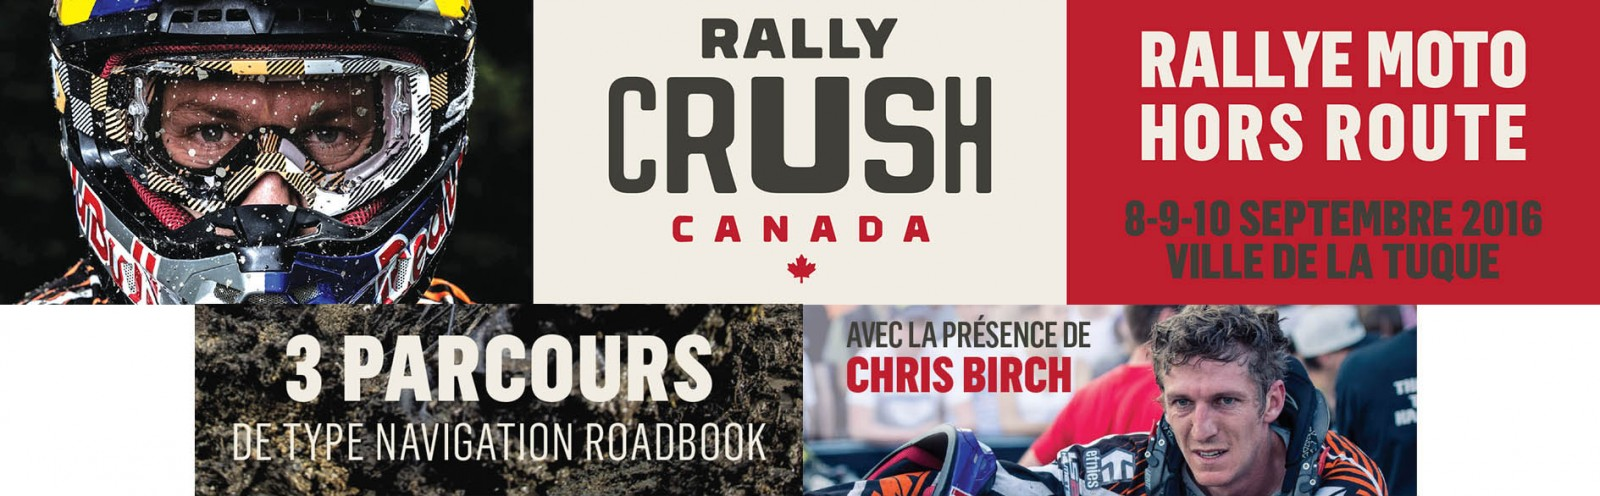 rally_crush_canada_header